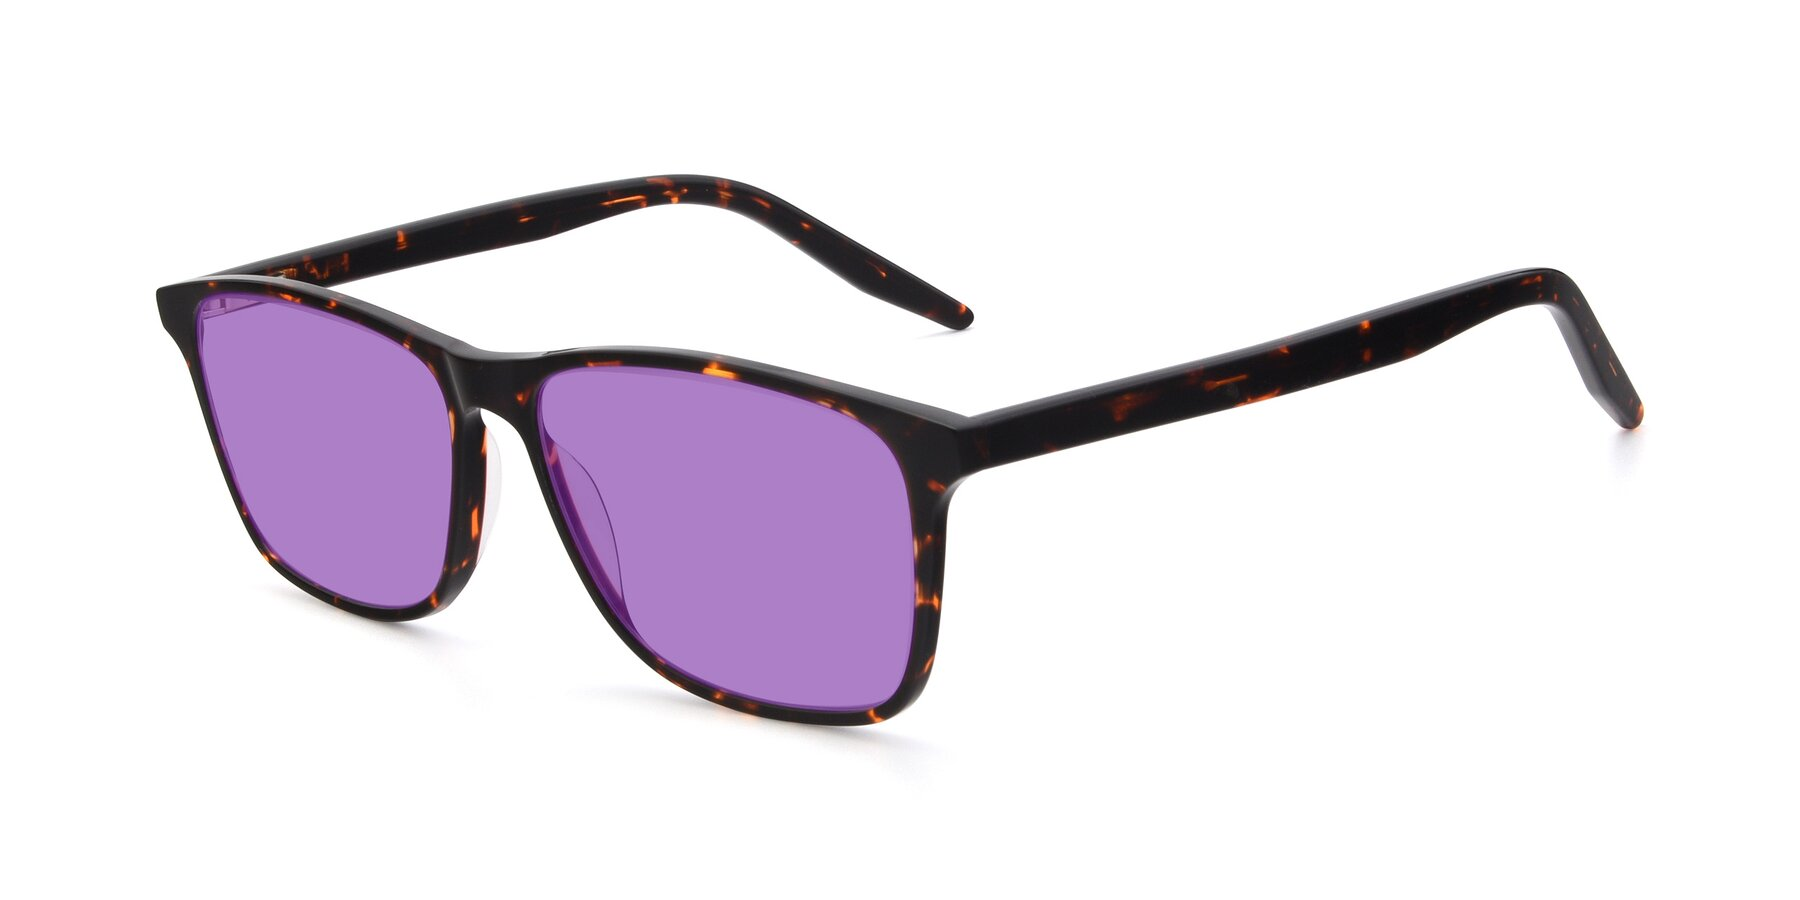 Angle of 17500 in Tortoise with Medium Purple Tinted Lenses